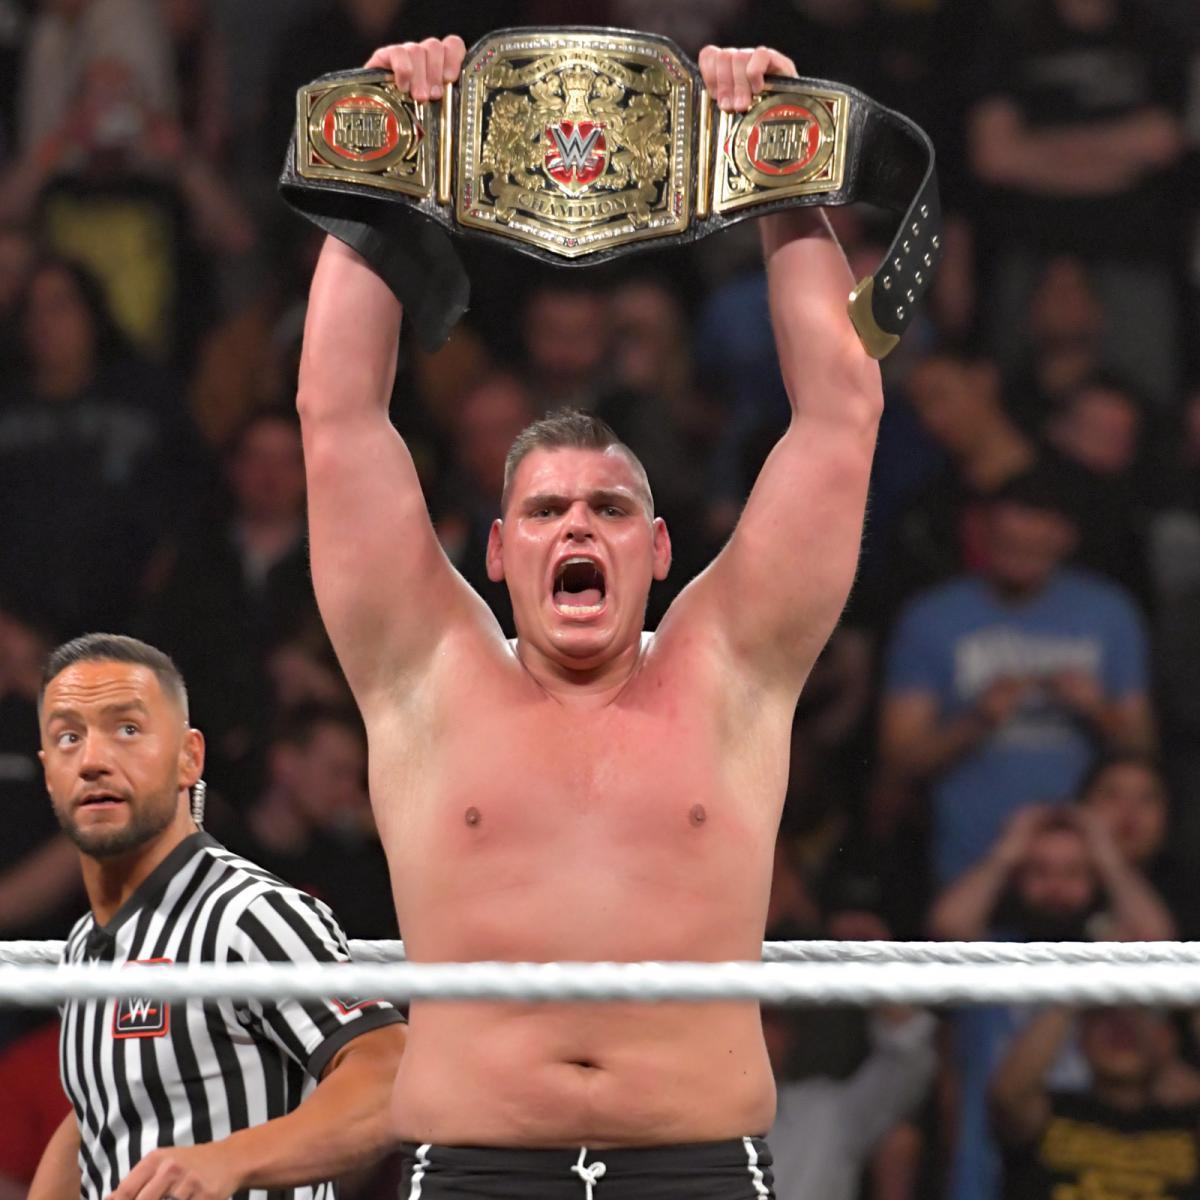 WALTER crowned NXT UK Champion at TakeOver New York - WWE